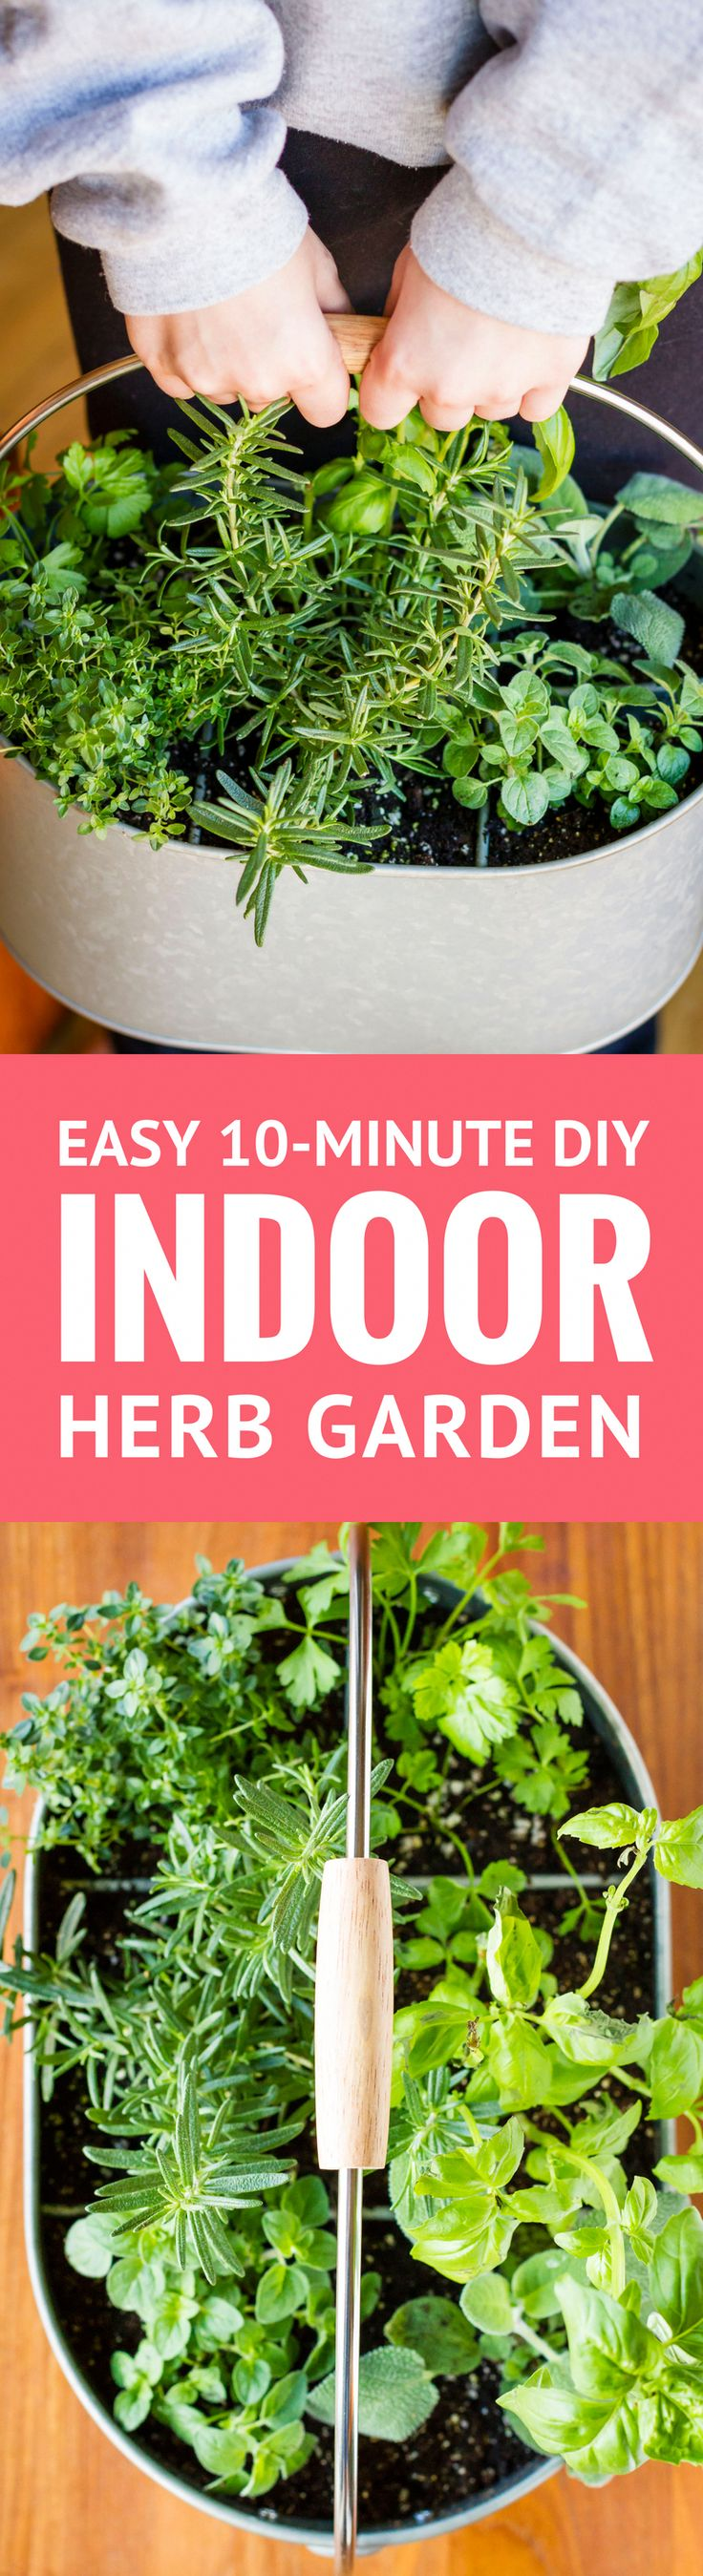 Easy Indoor Herb Garden — I was an indoor container gardening failure, until I decided a different approach was in order. Find out how you can create this simple DIY indoor herb garden in under 10 minutes! | unsophisticook.com